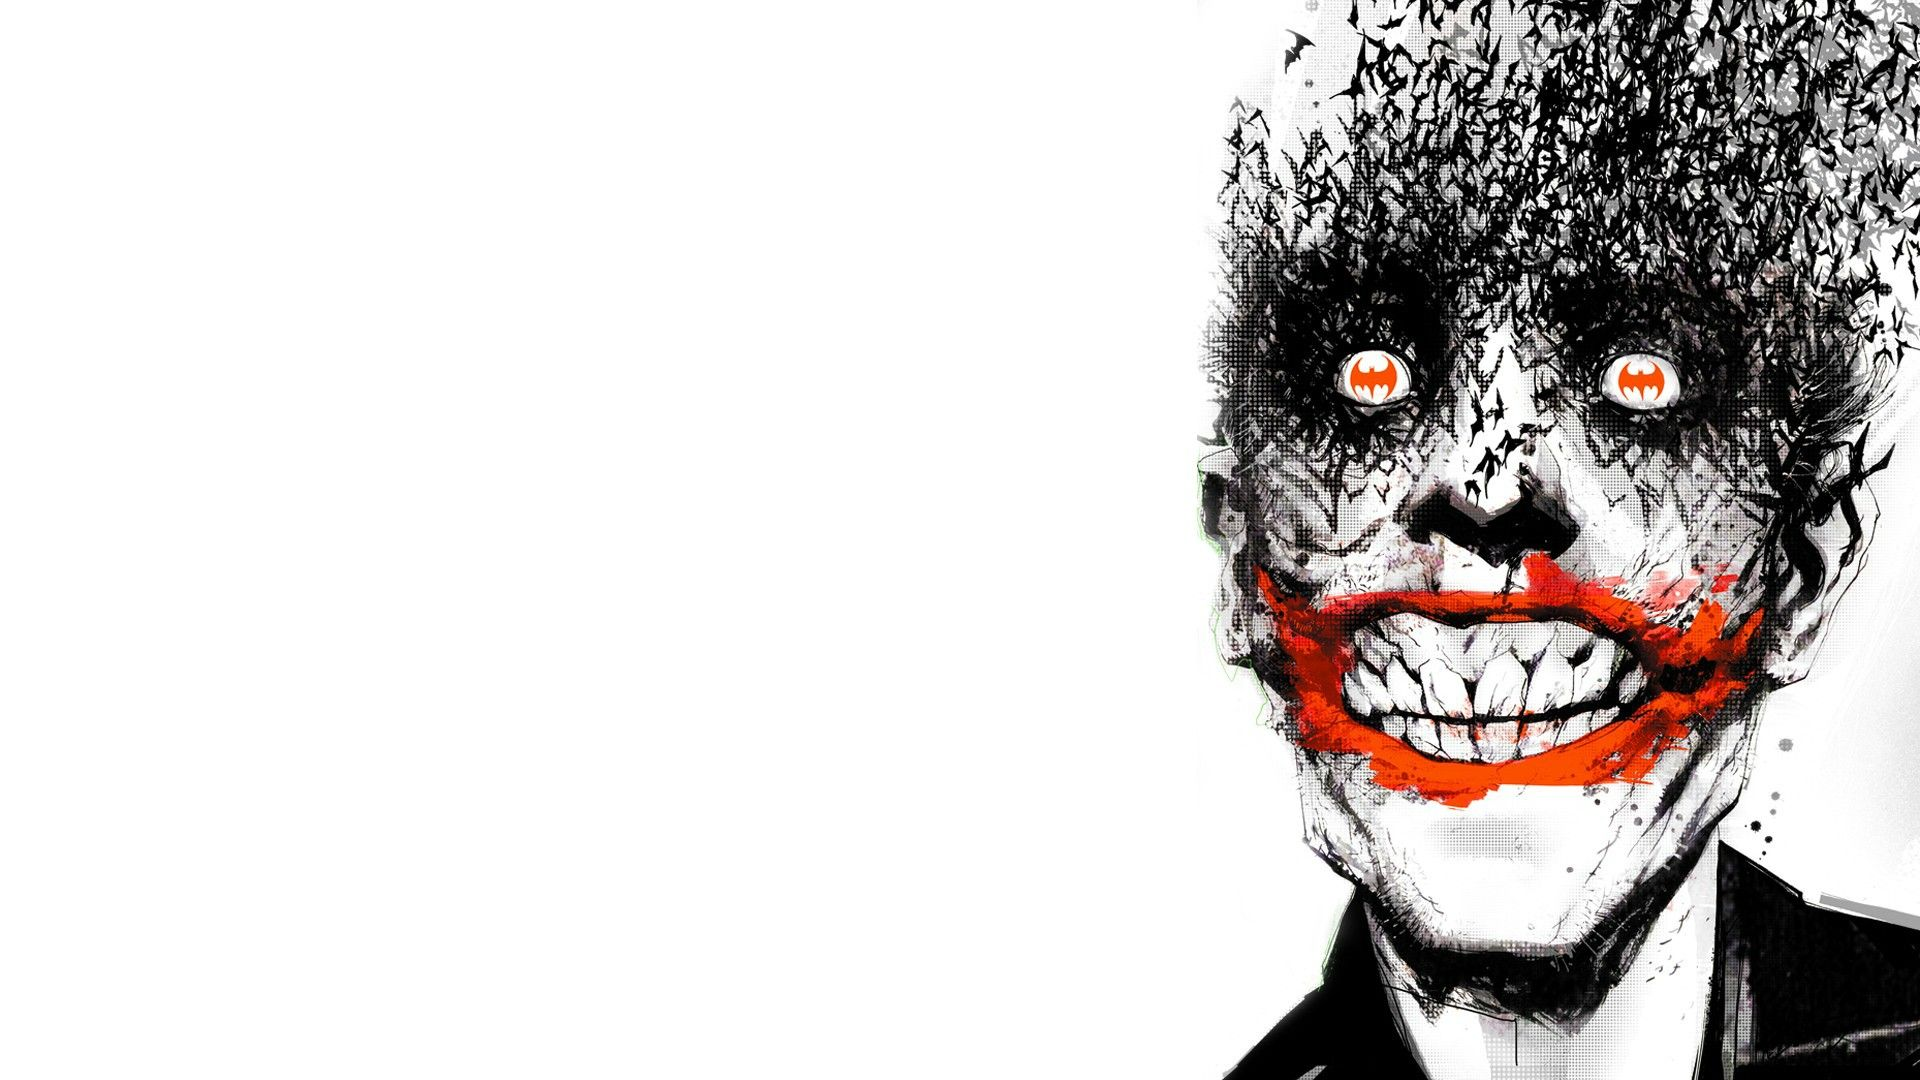 Crazy HD Wallpapers Collection | HD Wallpapers 3D | Wallpapers in 2019 | Joker wallpapers, Joker ...